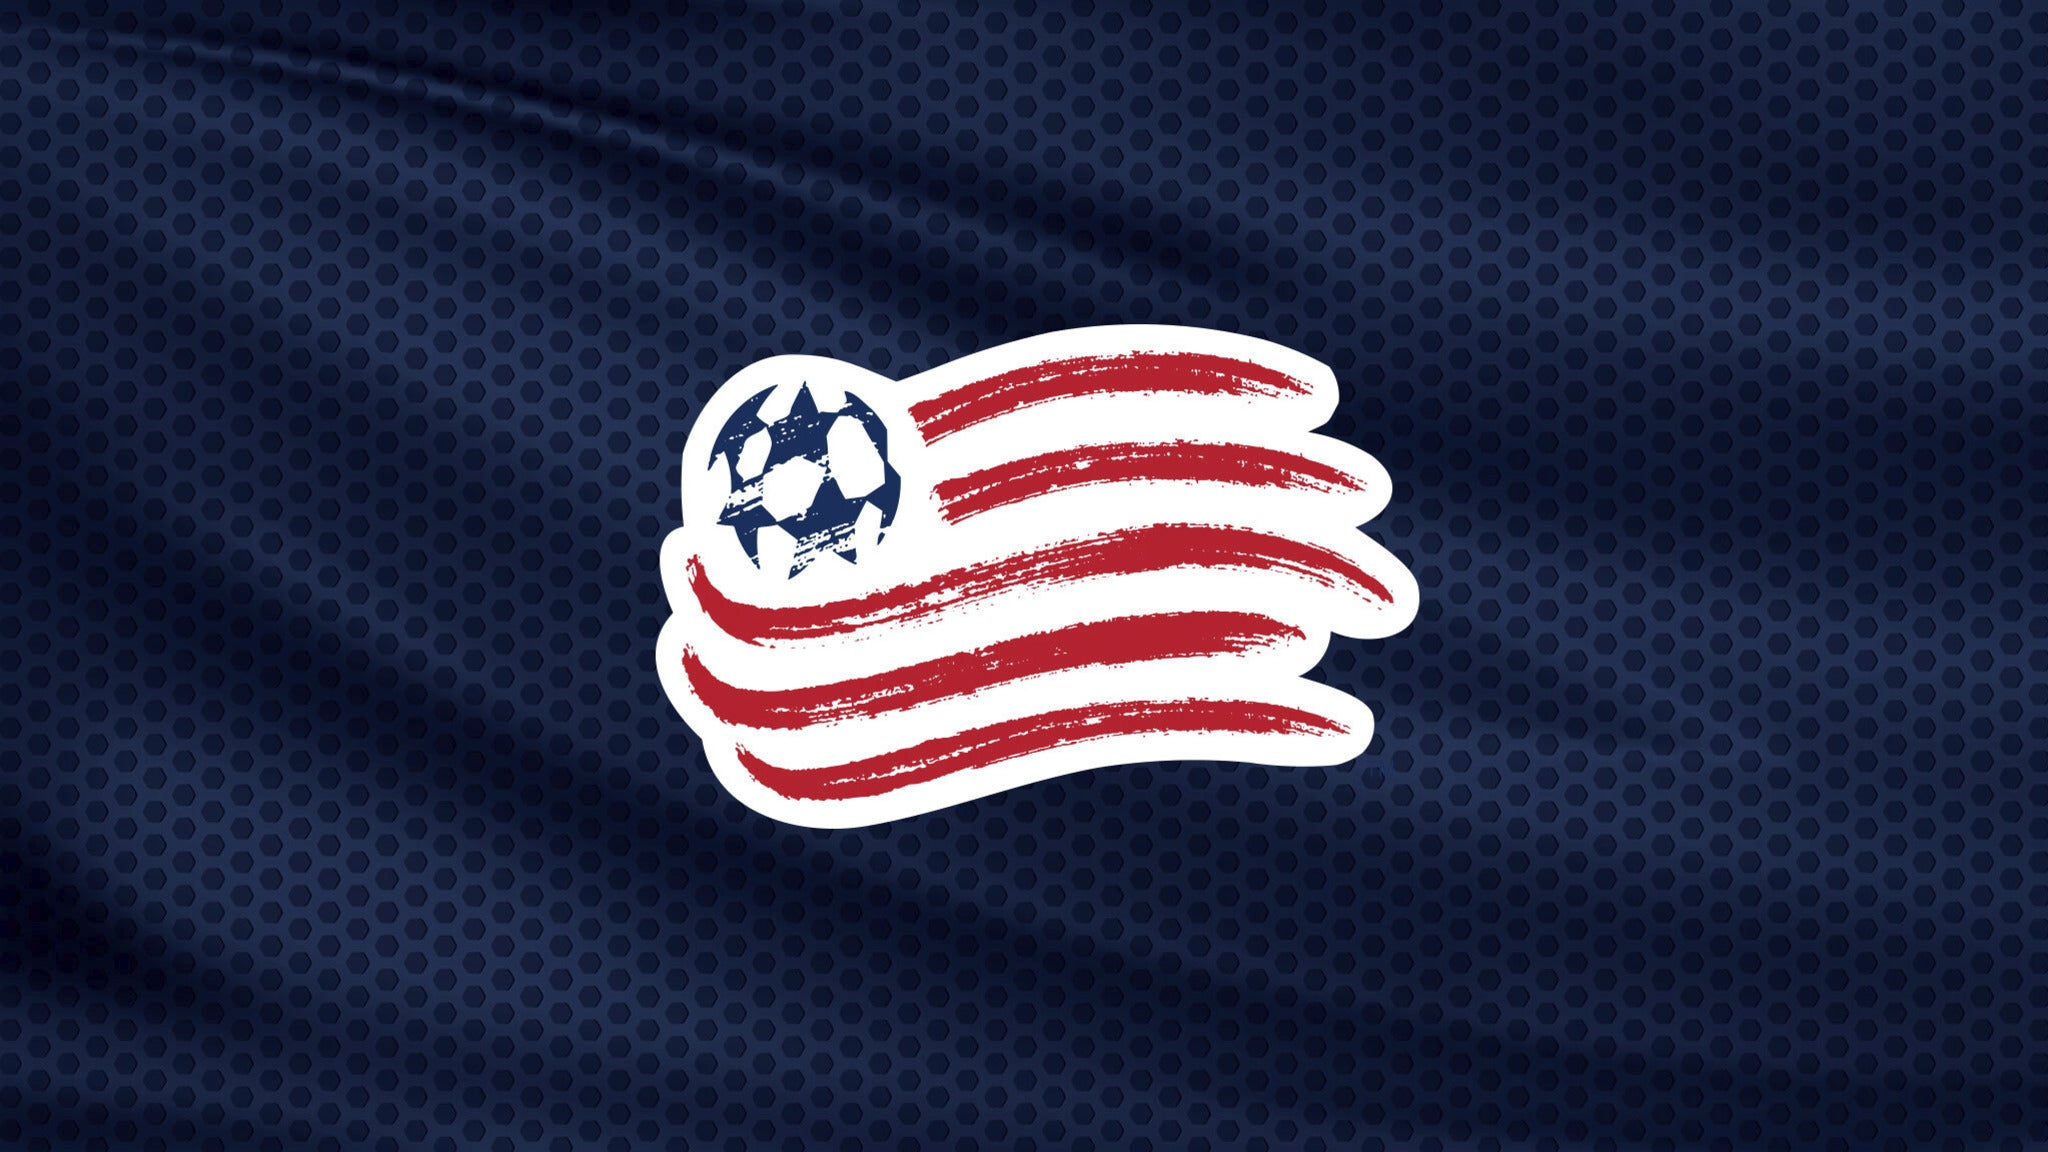 New England Revolution vs. Columbus Crew SC presale password for early tickets in Foxborough